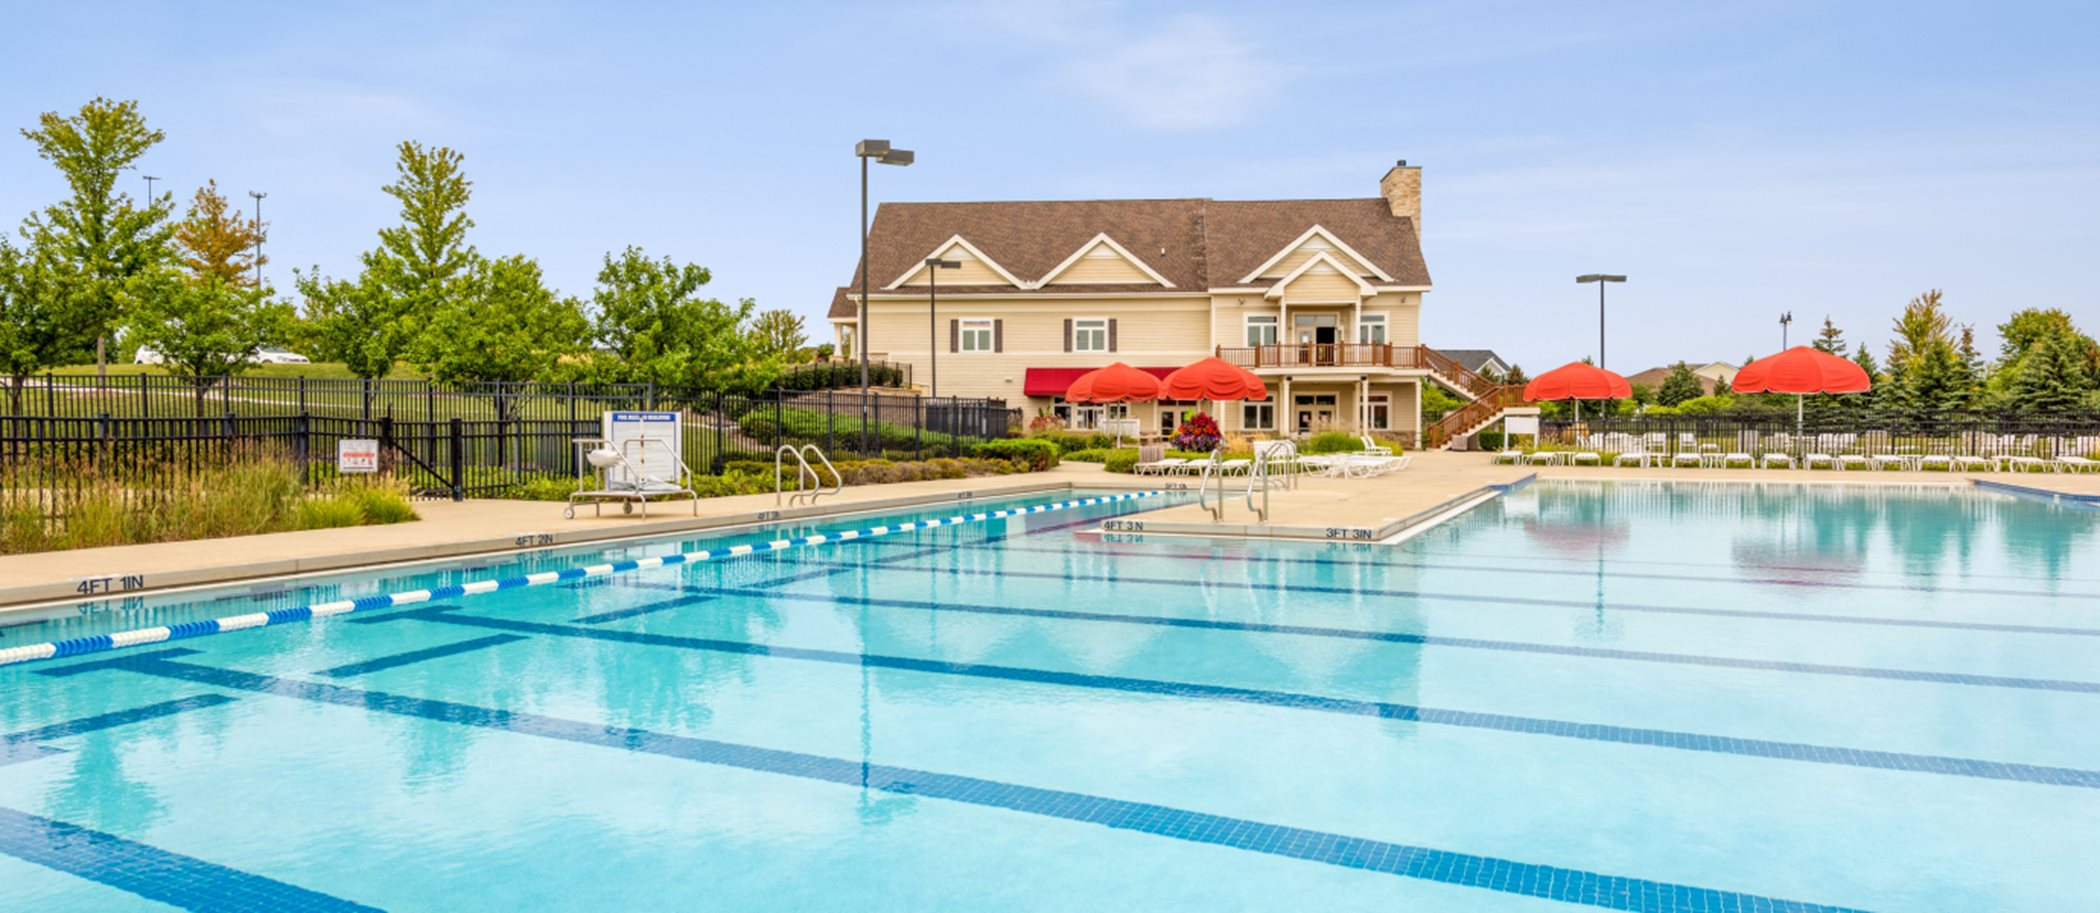 Talamore Clubhouse and Swimming Pool